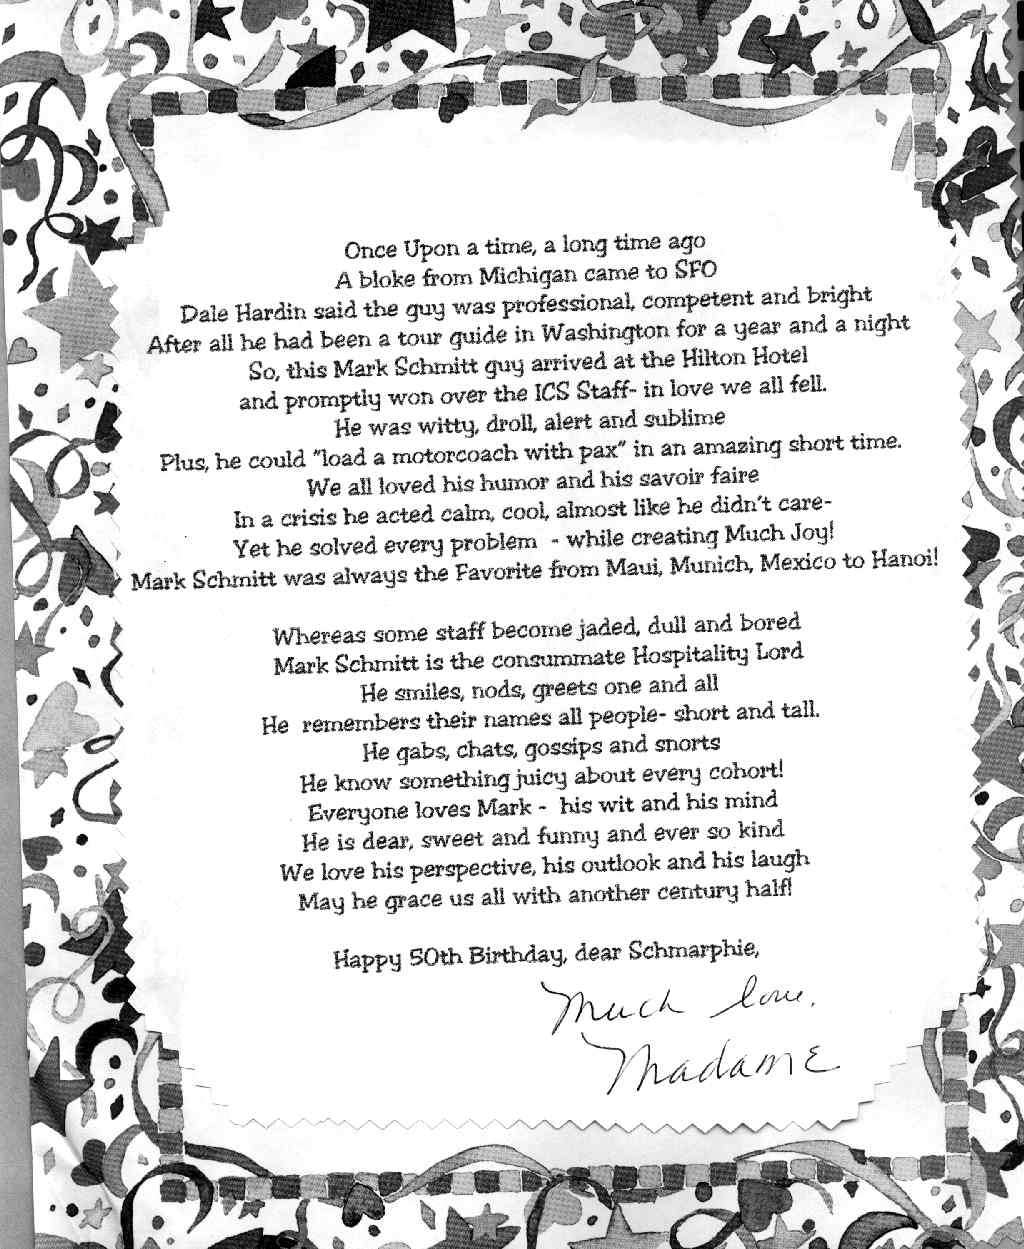 50th Wedding Anniversary Poems: Briefs Our Music 50th Class Reunion Poem Courtesy Of Dave